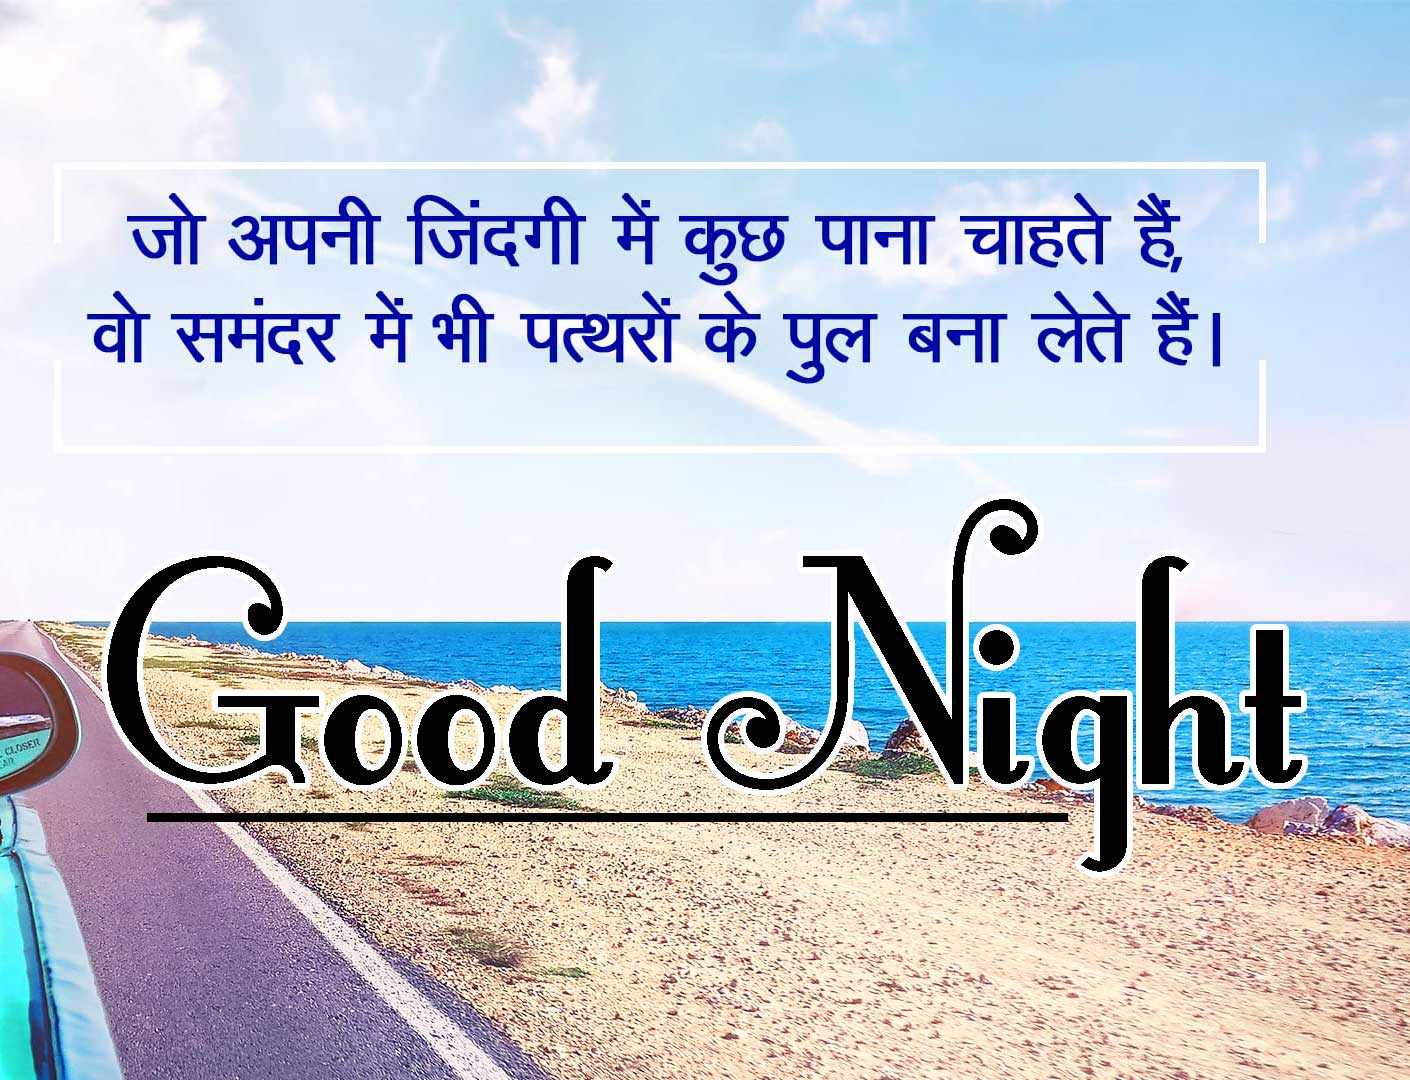 Good Night Images With Hindi Shayari 7